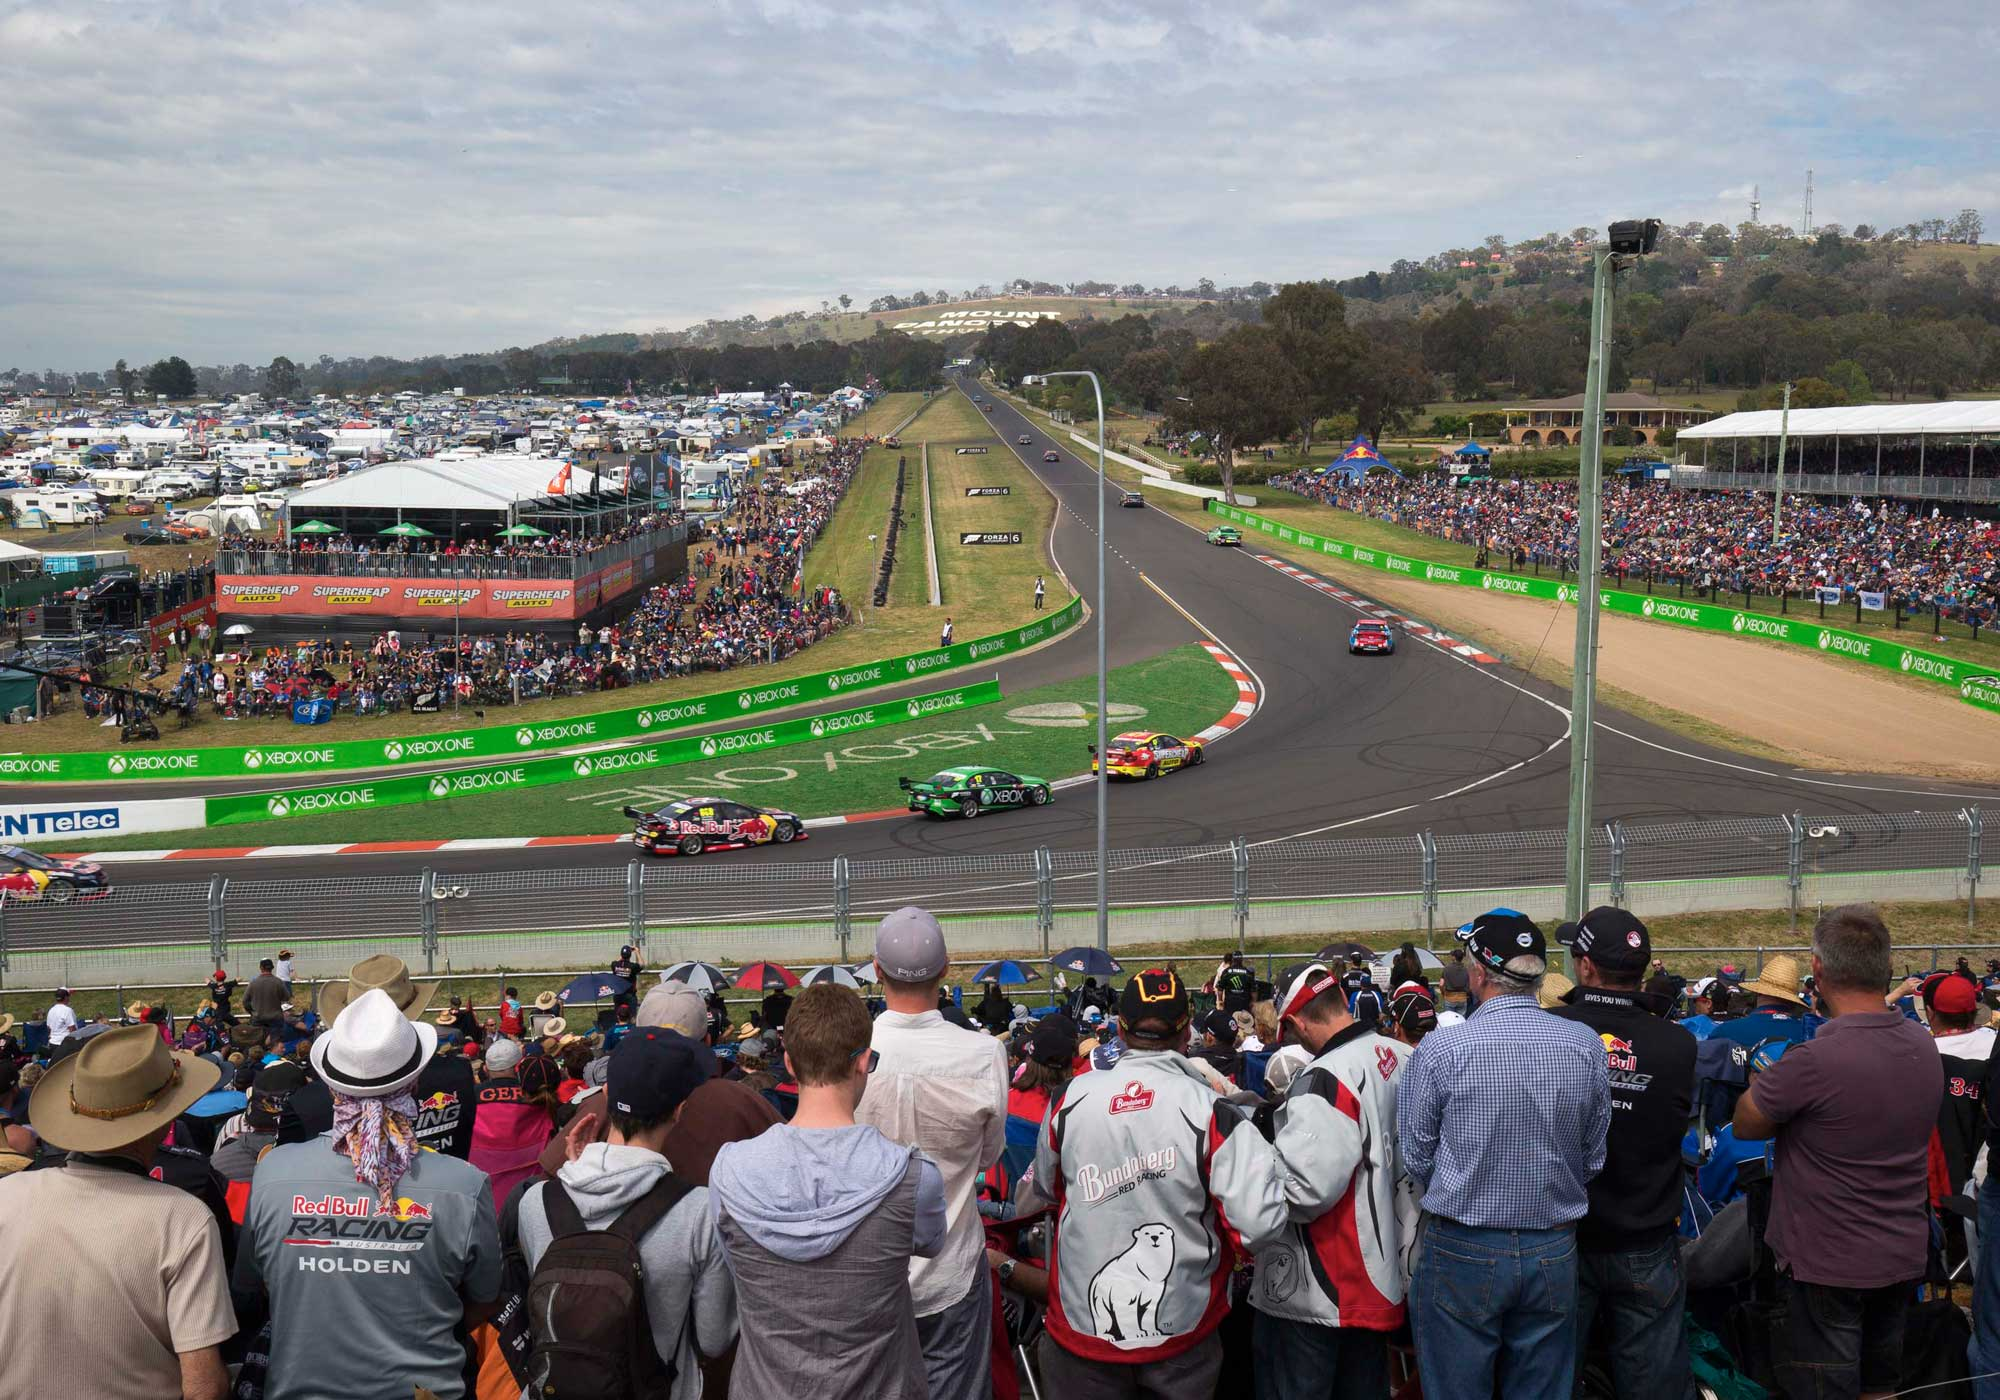 Crowds on either side facing down a bend and a straight stretch of the track at Bathurst 1000